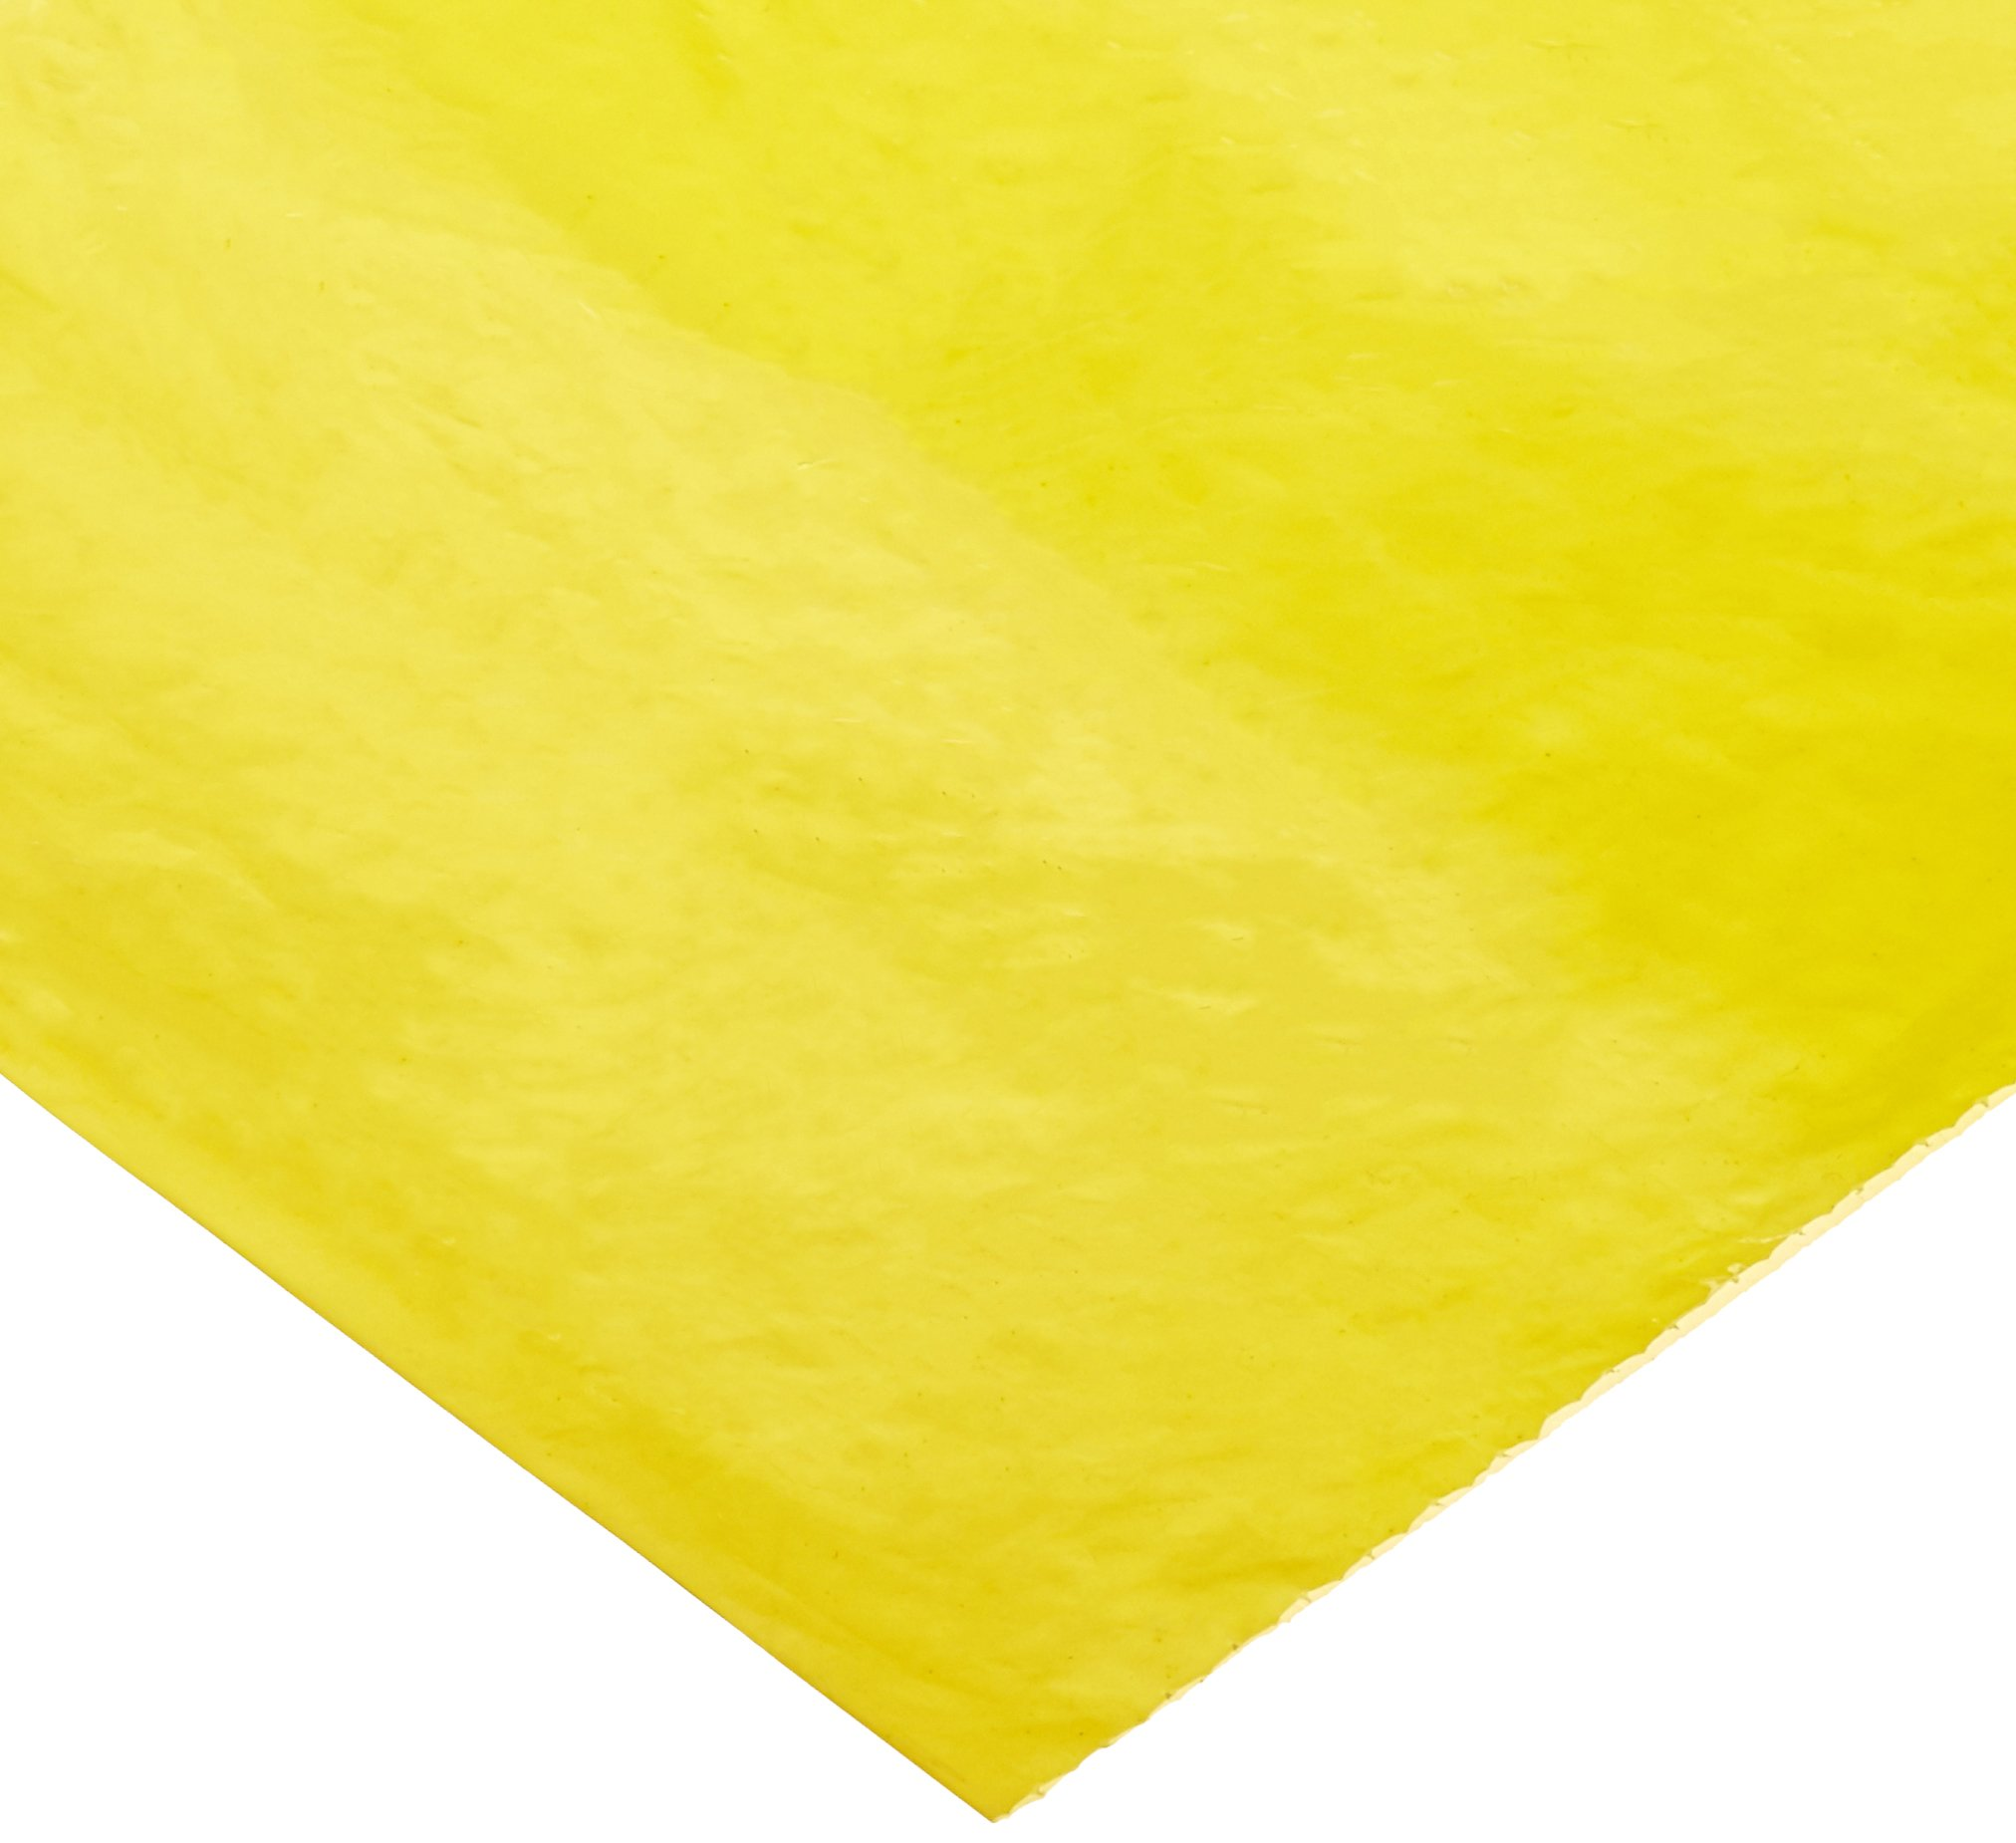 Medegen Medical Products 6625 Medical Equipment and Cart Dust Covers, LLDPE Film, 1.00 Mile Gauge, 55'' x 62'' x 27'', Yellow (Pack of 50)